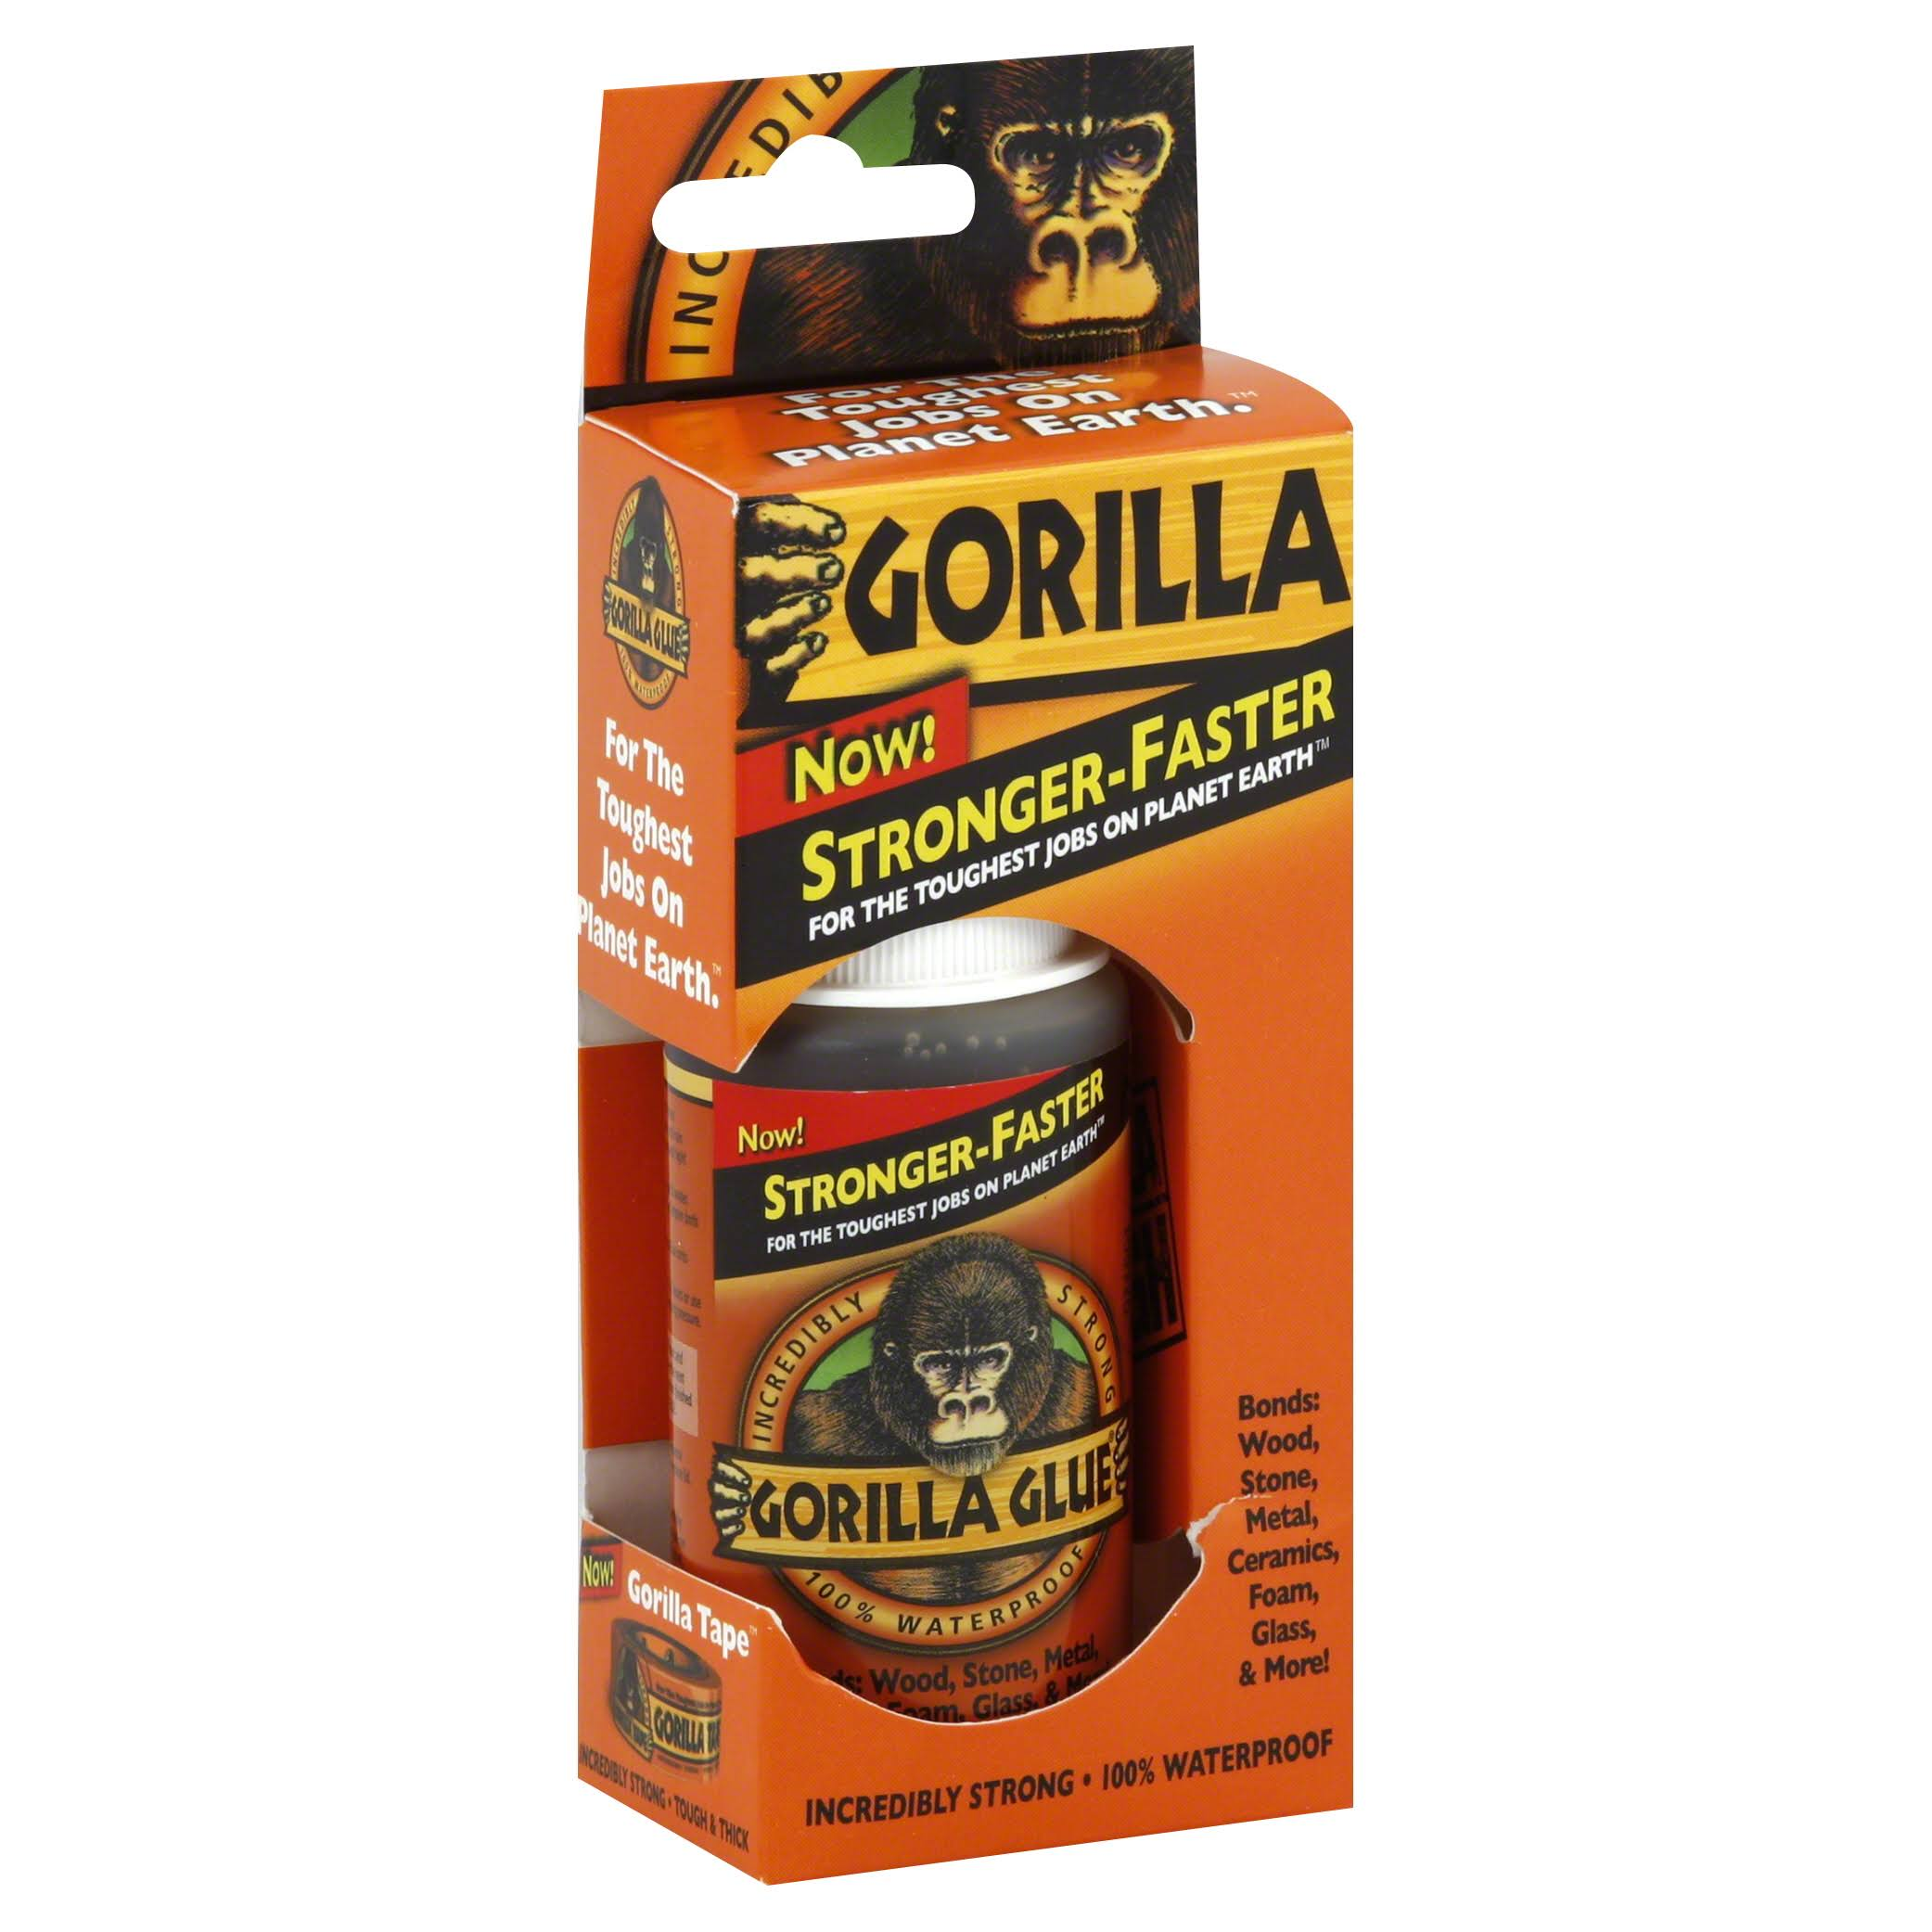 Gorilla Glue All-Purpose Adhesive - 4oz